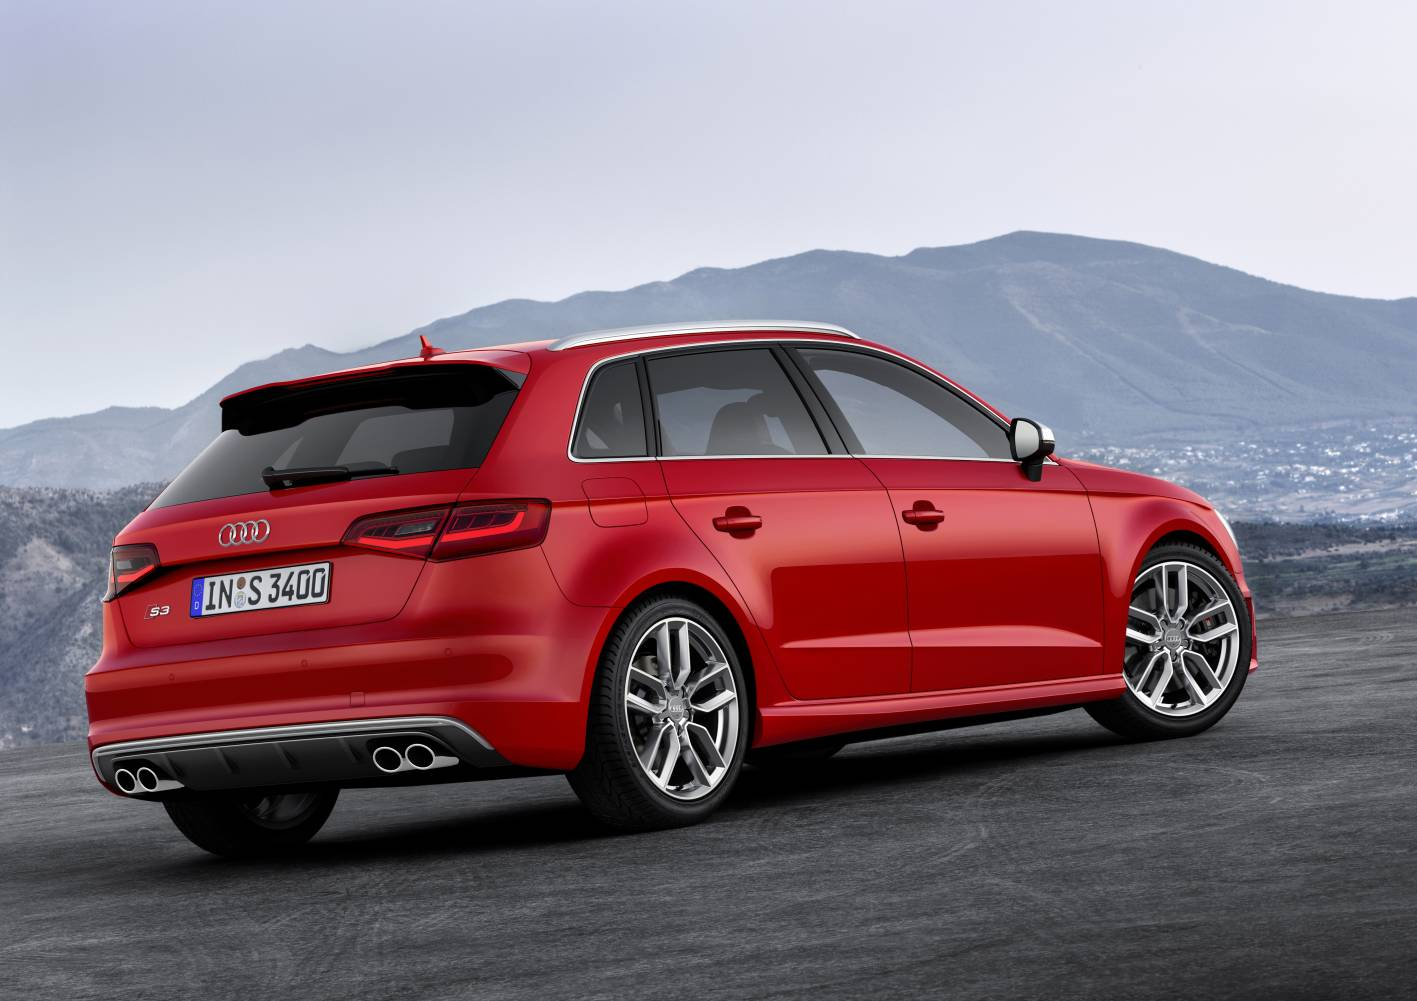 2013 Audi S3 Sportback Revealed Arriving In Australia Late 2013 on audi rs3 sportback 2016